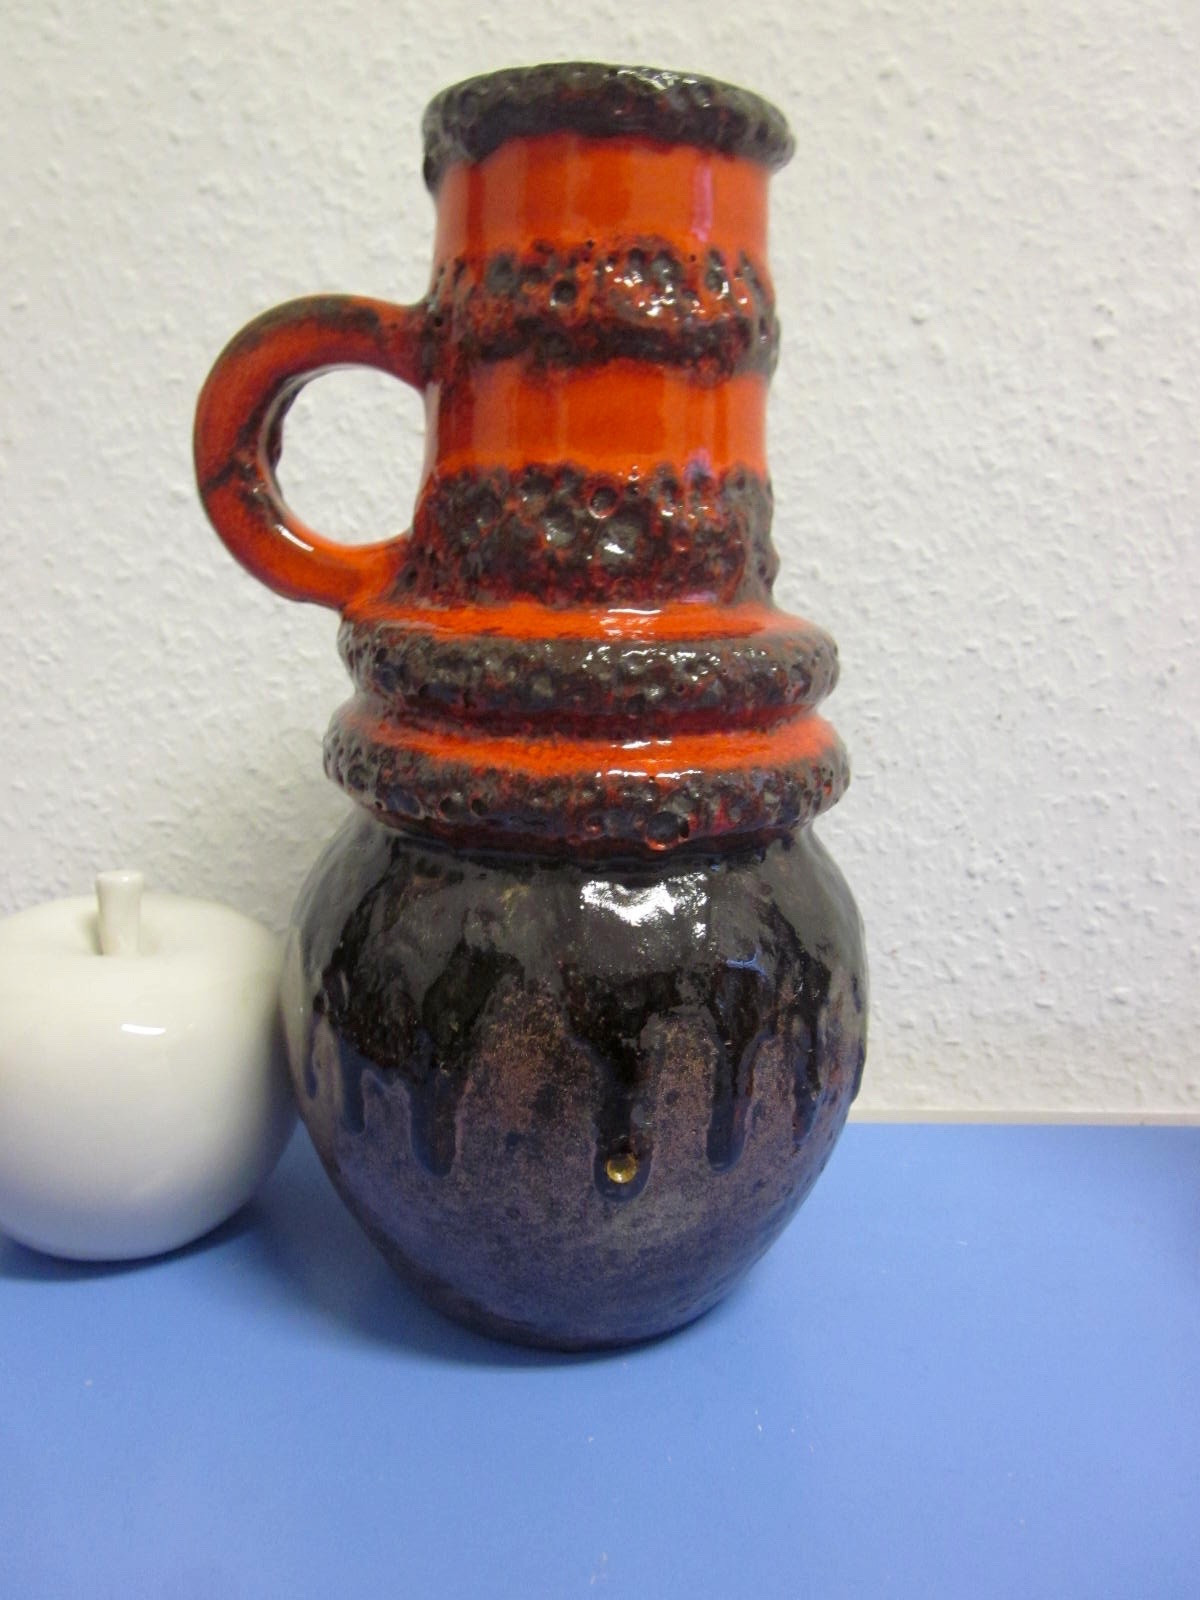 pottery vase shapes of scheurich vienna tall 70s vase with lava glaze wgp pottery english throughout img 2512